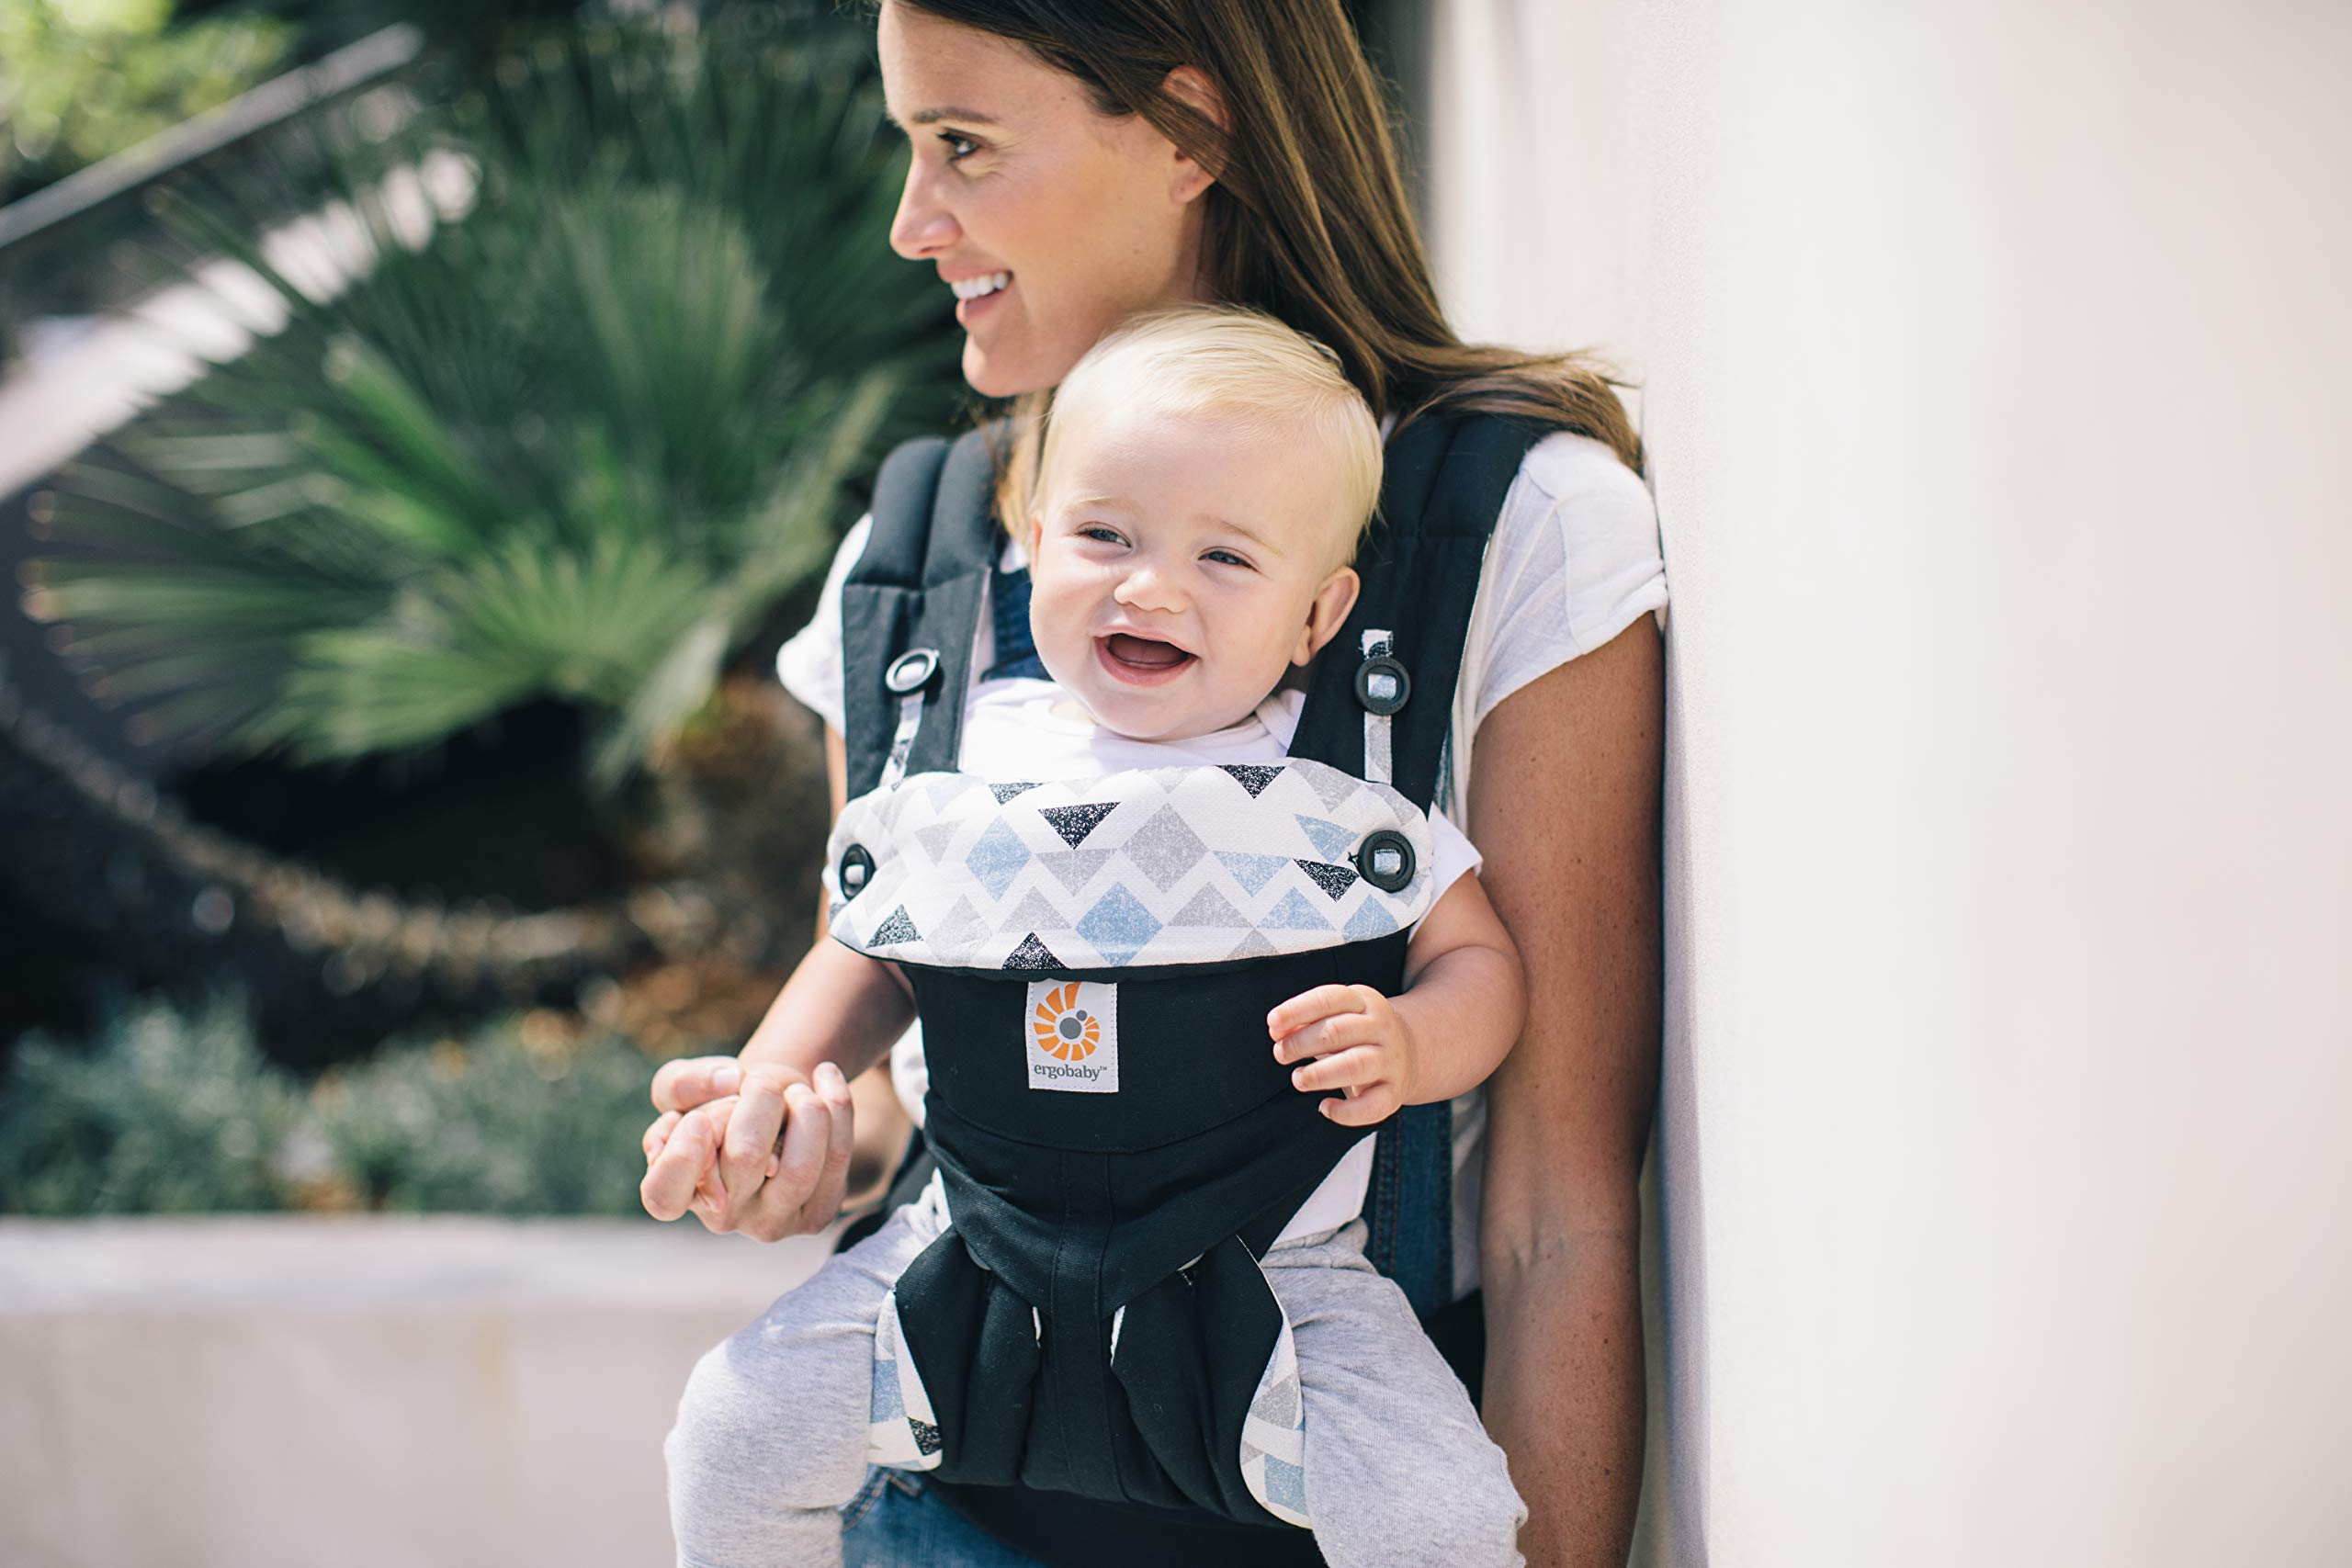 Ergobaby Baby Carrier for Toddler, 360 Collection, 4-Position Ergonomic Child Carrier and Backpack (Triple Triangles) Ergobaby Ergonomic baby carrier with 4 carry positions: front-inward, back, hip, and front-outward. The carrier is suitable for babies and toddlers weighing 5.5 to 20kg, and can be used as a back carrier. Also with insert for newborn babies weighing 3.2-5.5kg, sold separately. NEW - Maximum comfort for parent: Longwear comfort with lumbar support waistbelt and extra cushioned shoulder straps. The carrier is suitable for men and women. Maximum baby comfort - The structured bucket seat supports the correct frog-leg position for the baby. The carrier also has a padded, foldable head and neck support. Ergobaby carriers are a new take on the usual baby sling. 5